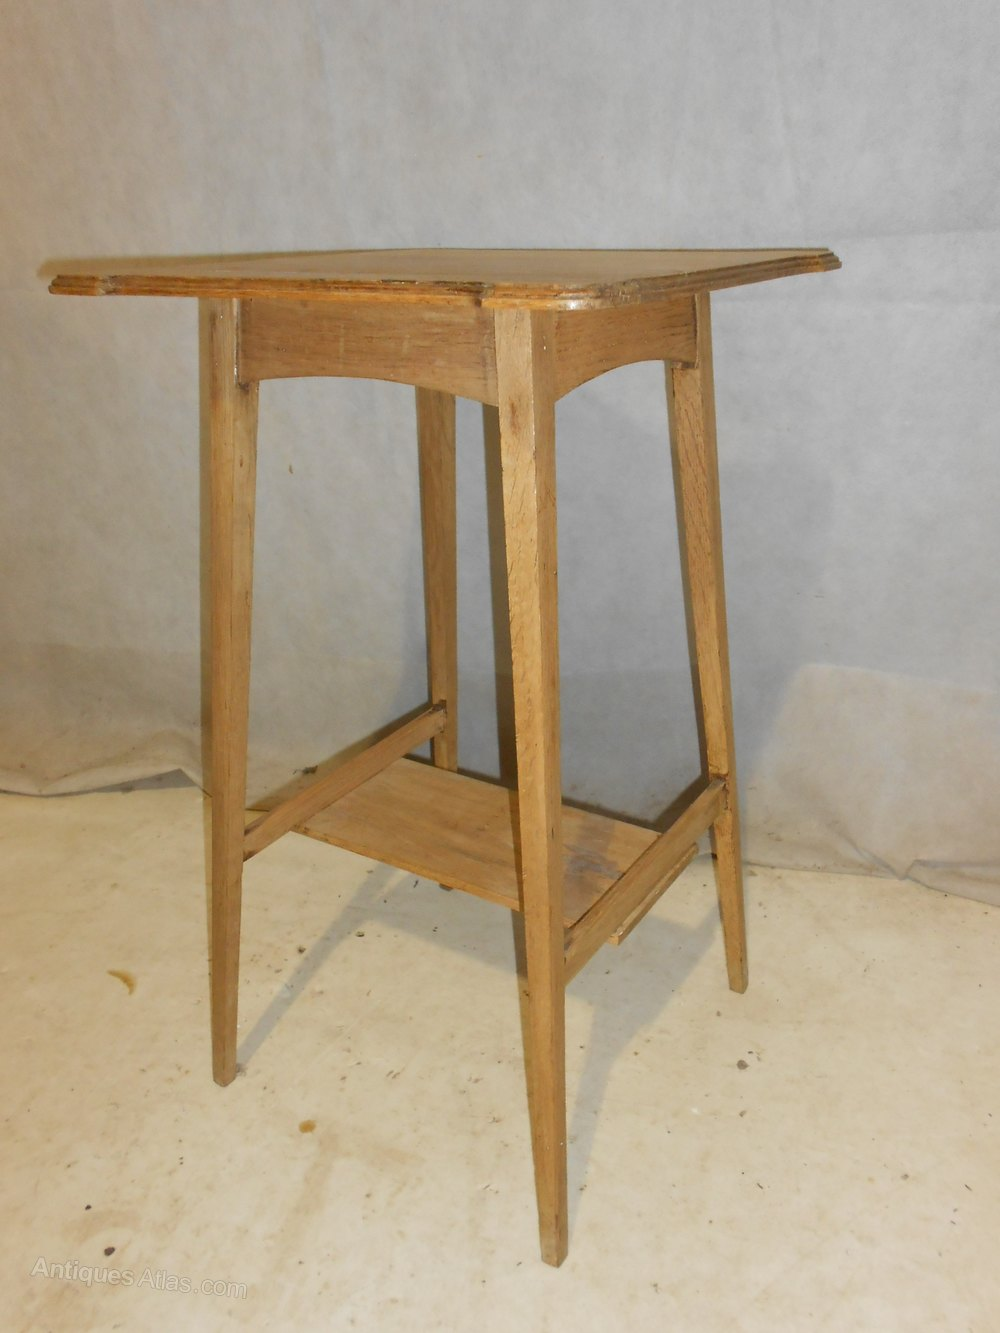 Antique arts crafts oak side table c1880 1900 antiques for Arts and crafts side table